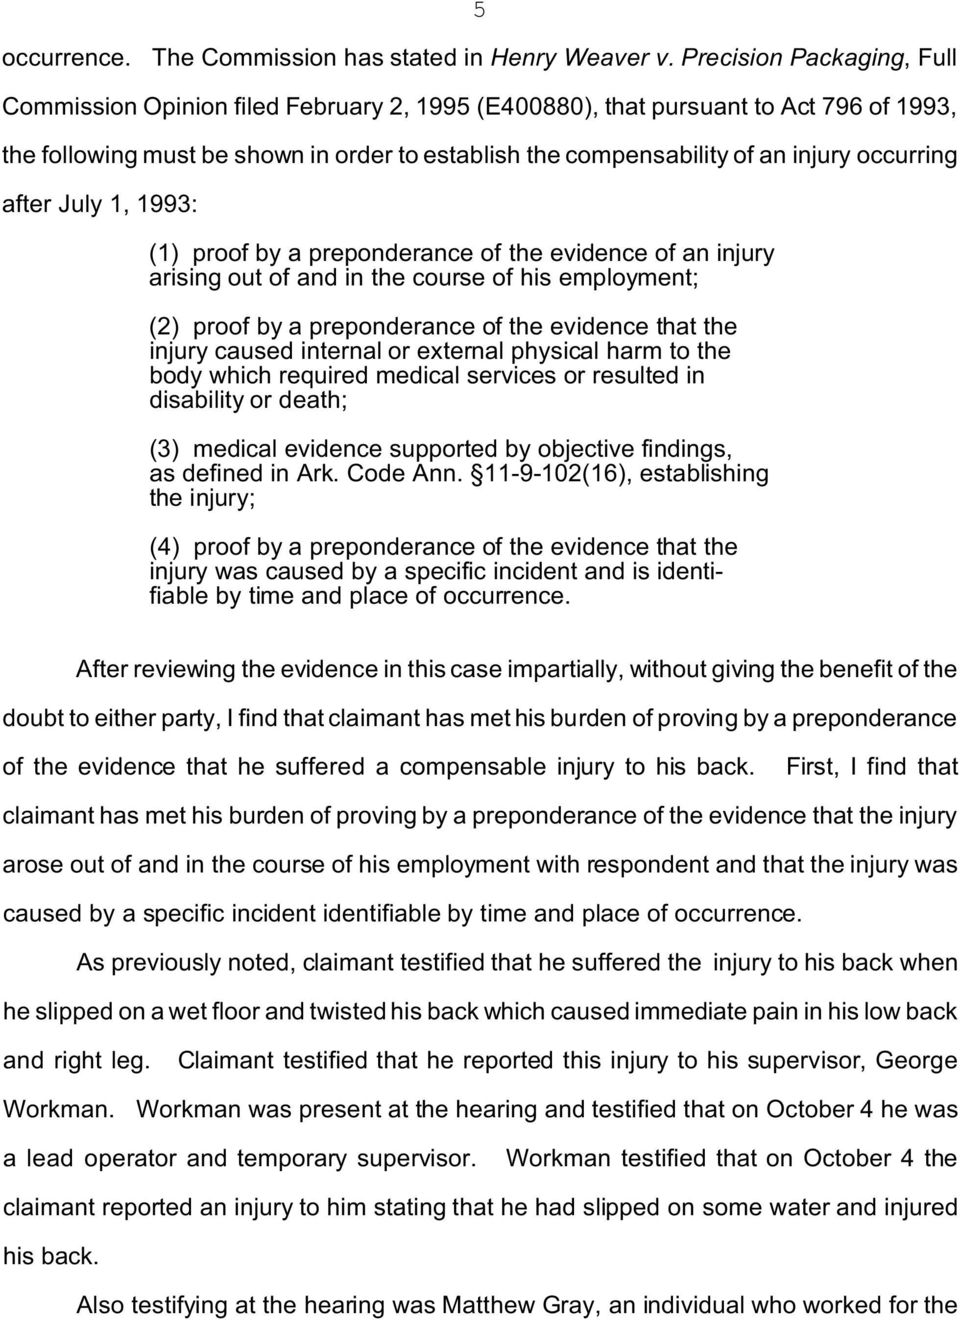 occurring after July 1, 1993: (1) proof by a preponderance of the evidence of an injury arising out of and in the course of his employment; (2) proof by a preponderance of the evidence that the